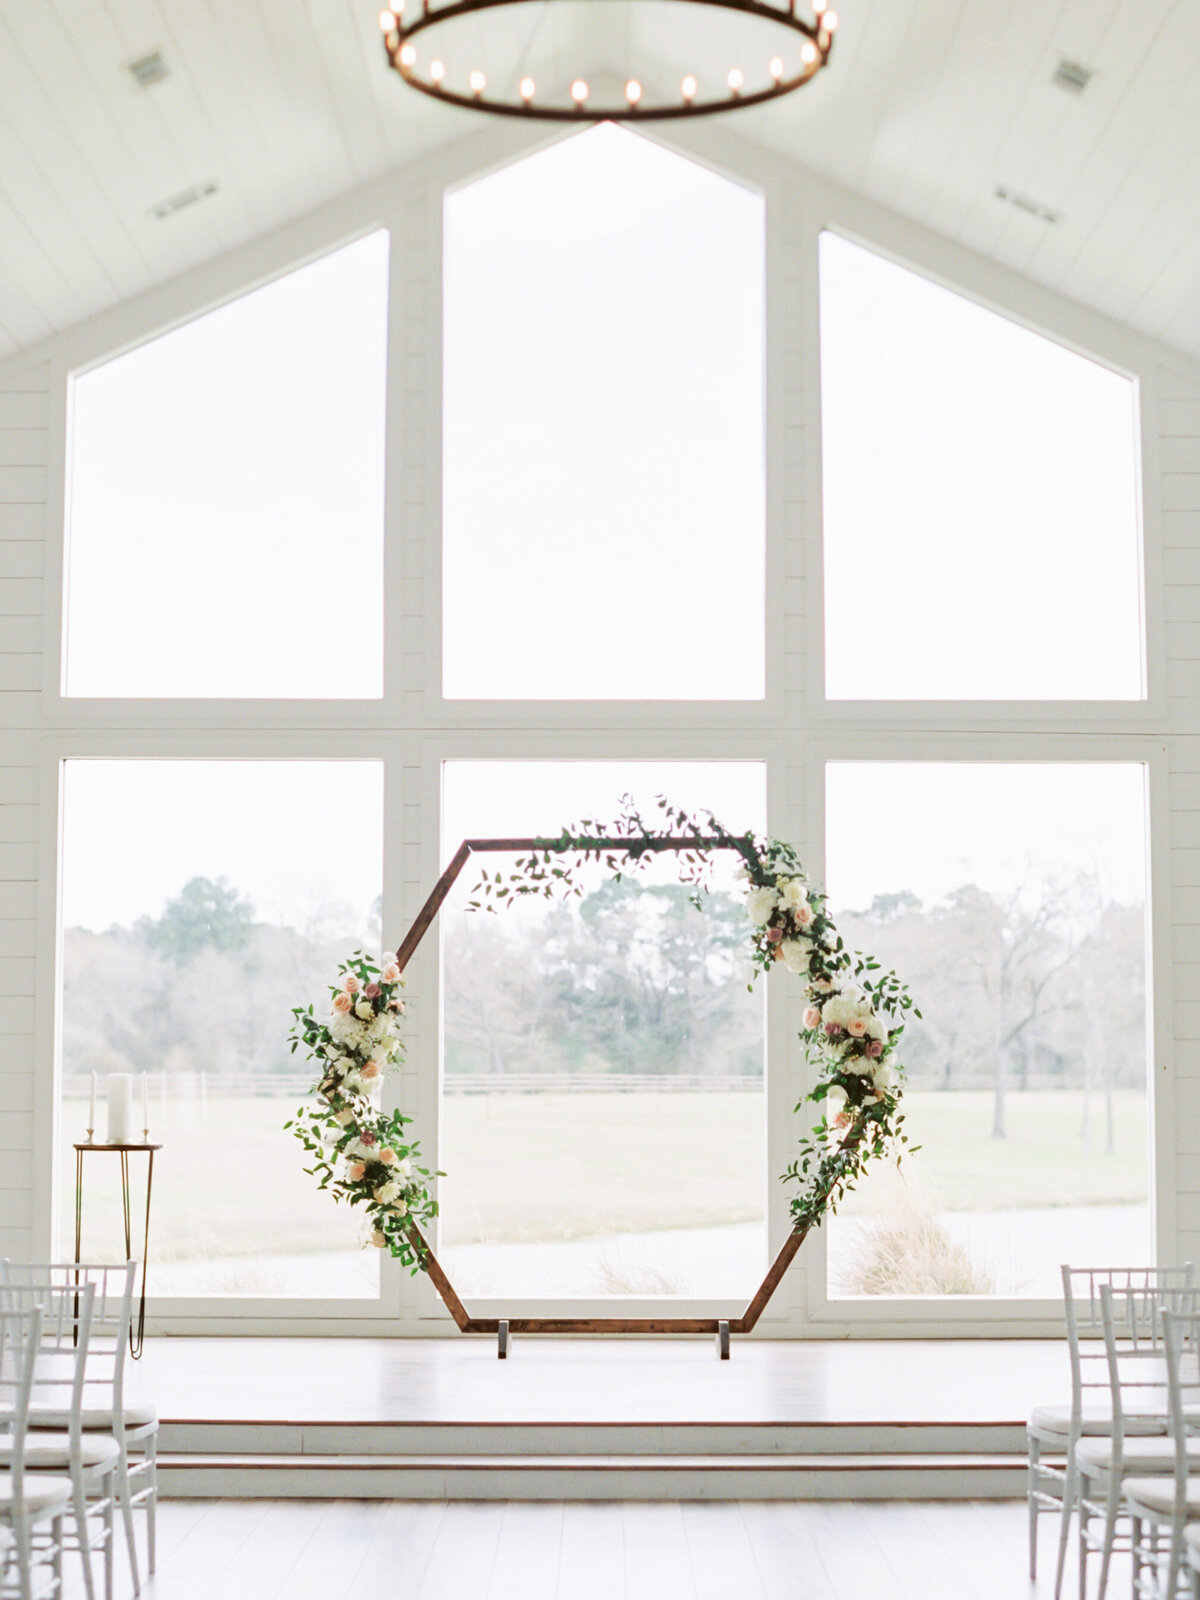 the-farmhouse-wedding-houston-texas-wedding-photographer-mackenzie-reiter-photography-47